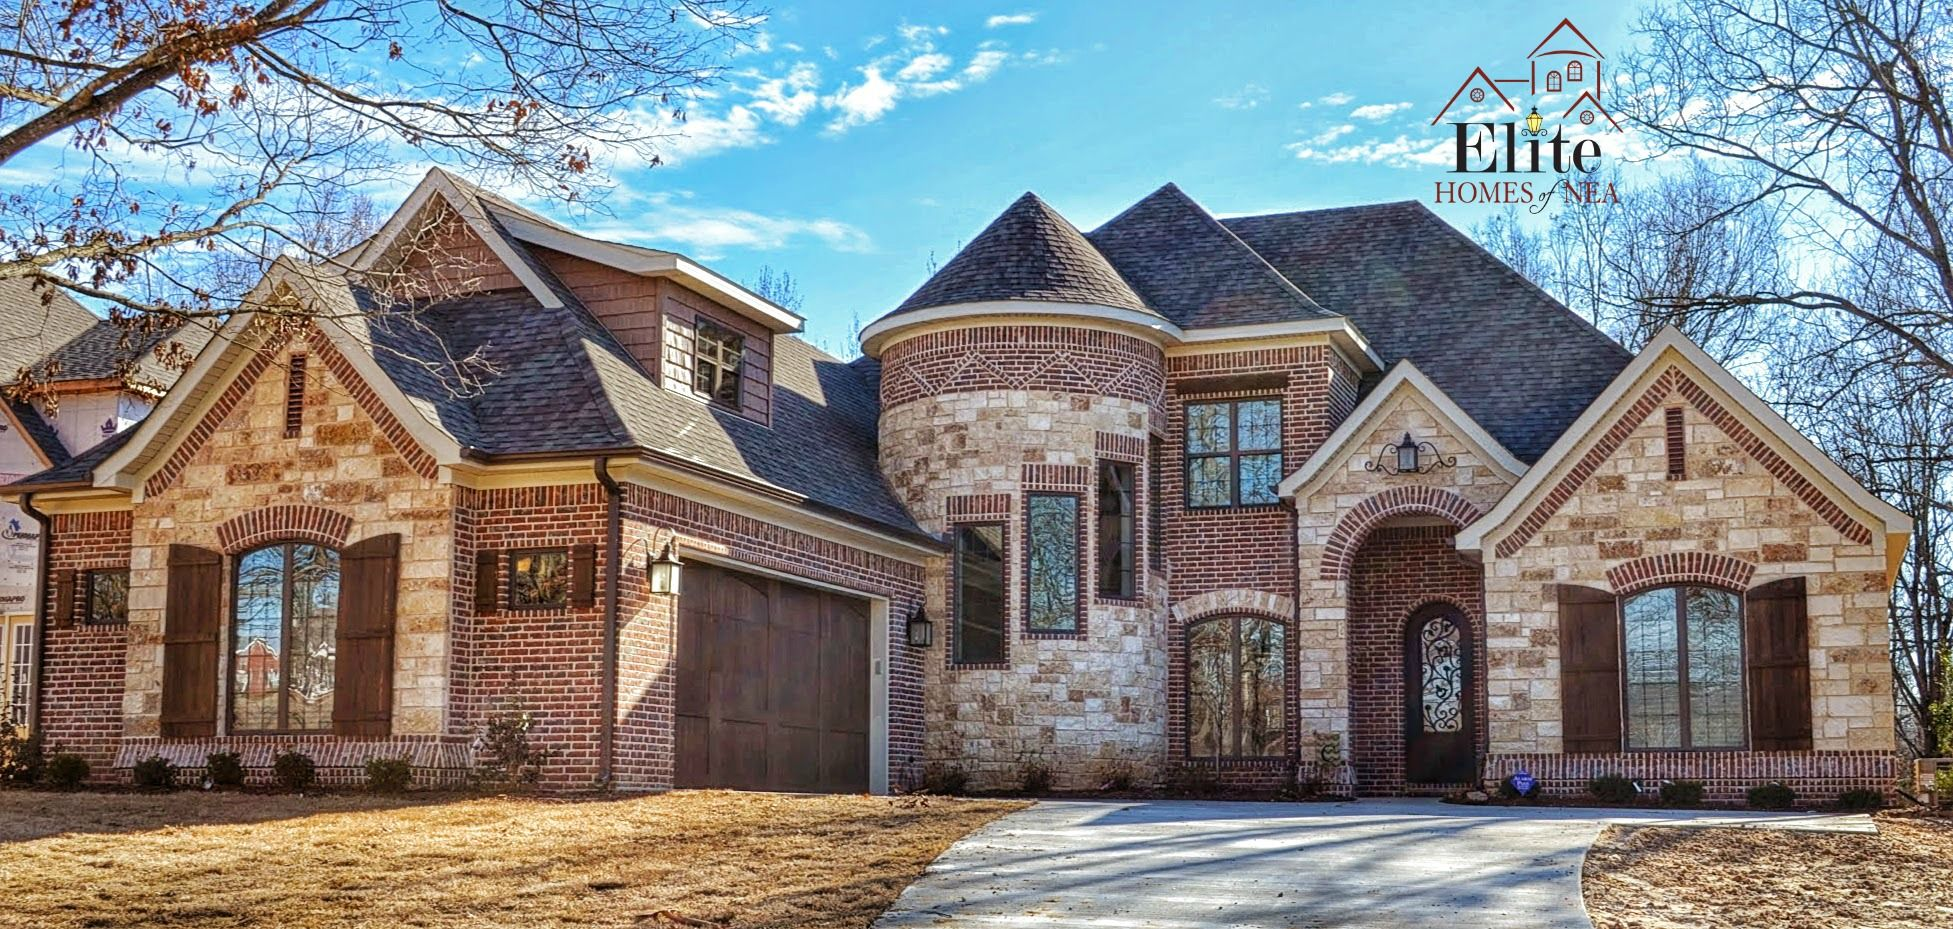 Brick And Stone Exterior Combinations French Country Exterior With Turret Beautiful Brick And